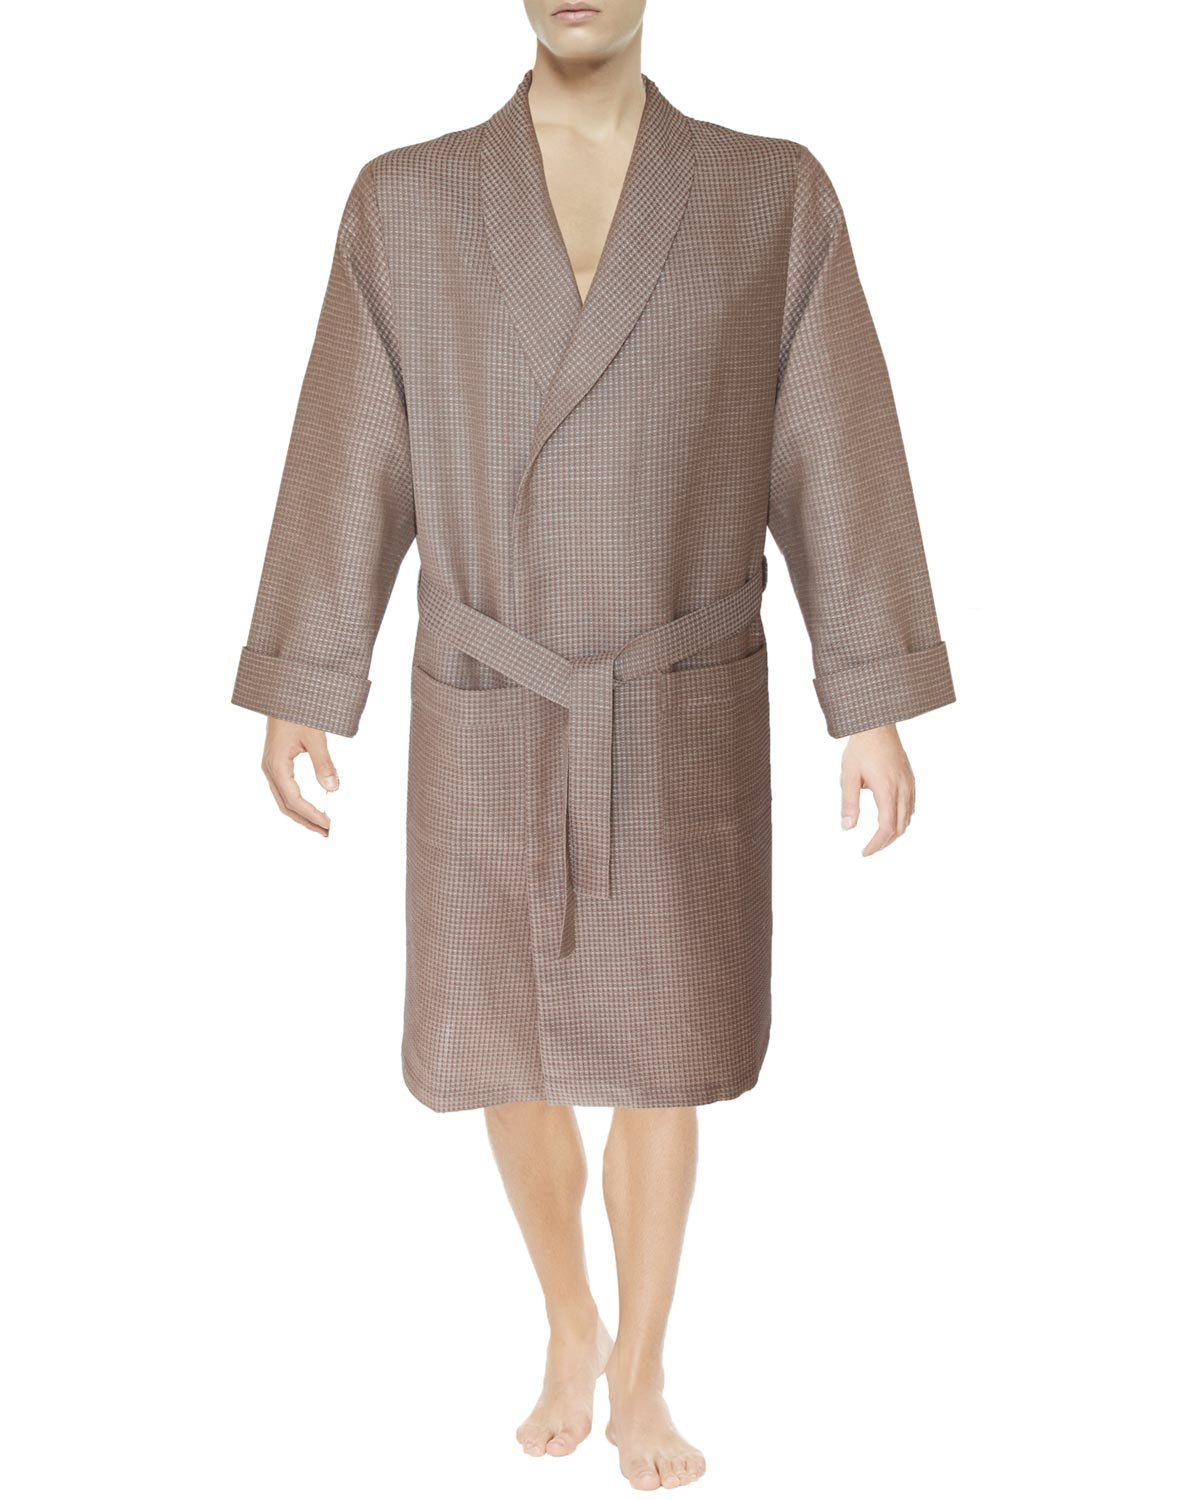 Armani International Linen Cotton Textured Waffle Weave Robe Slippers Set X-Large, Light Brown-Beige - Perfect Wedding Gift! Gift Packaging | Made in Europe by Armani International